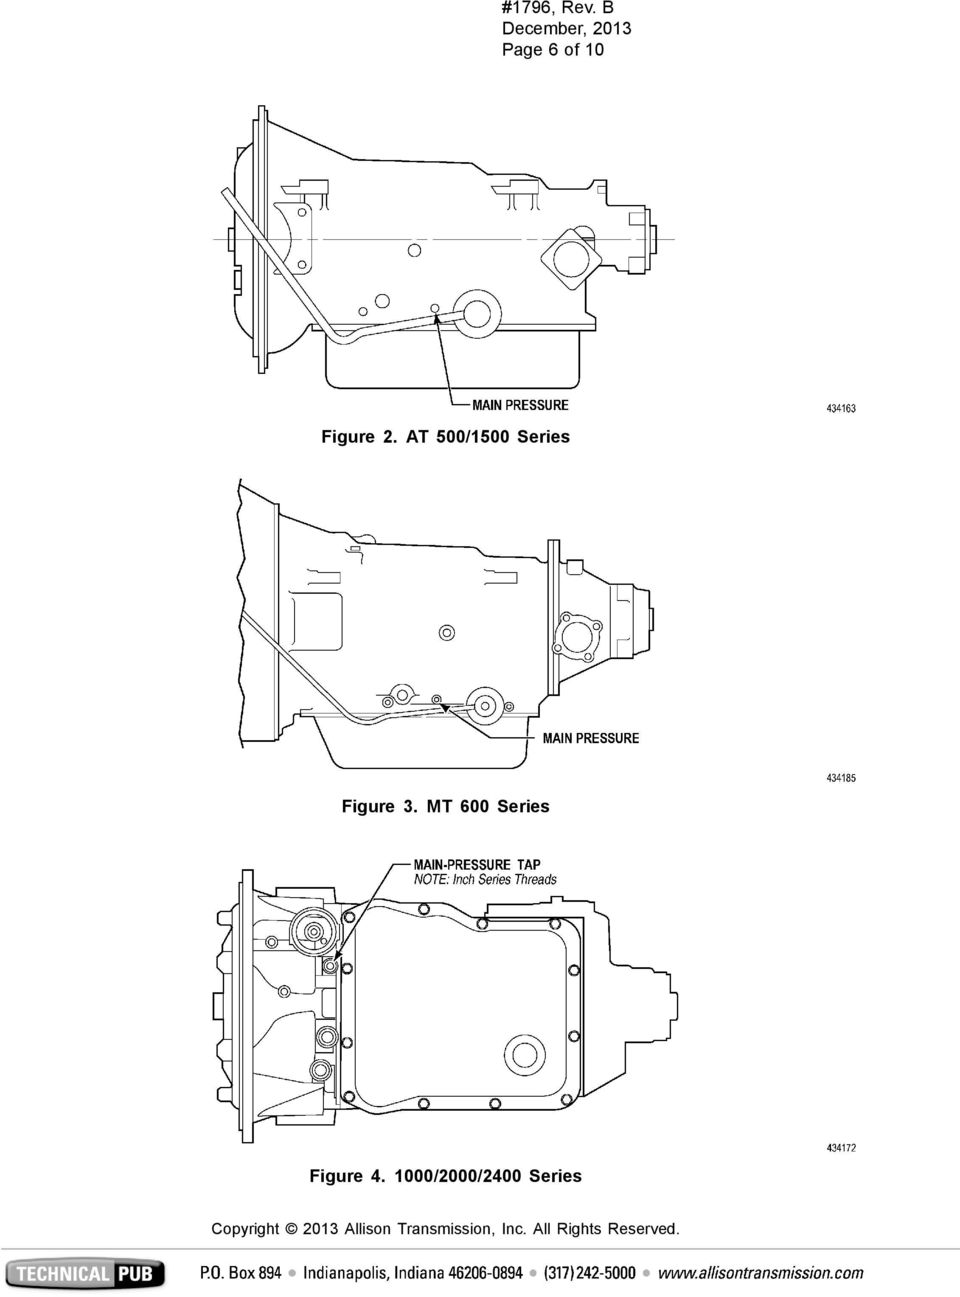 All Allison Transmission, Inc  Commercial Transmissions and